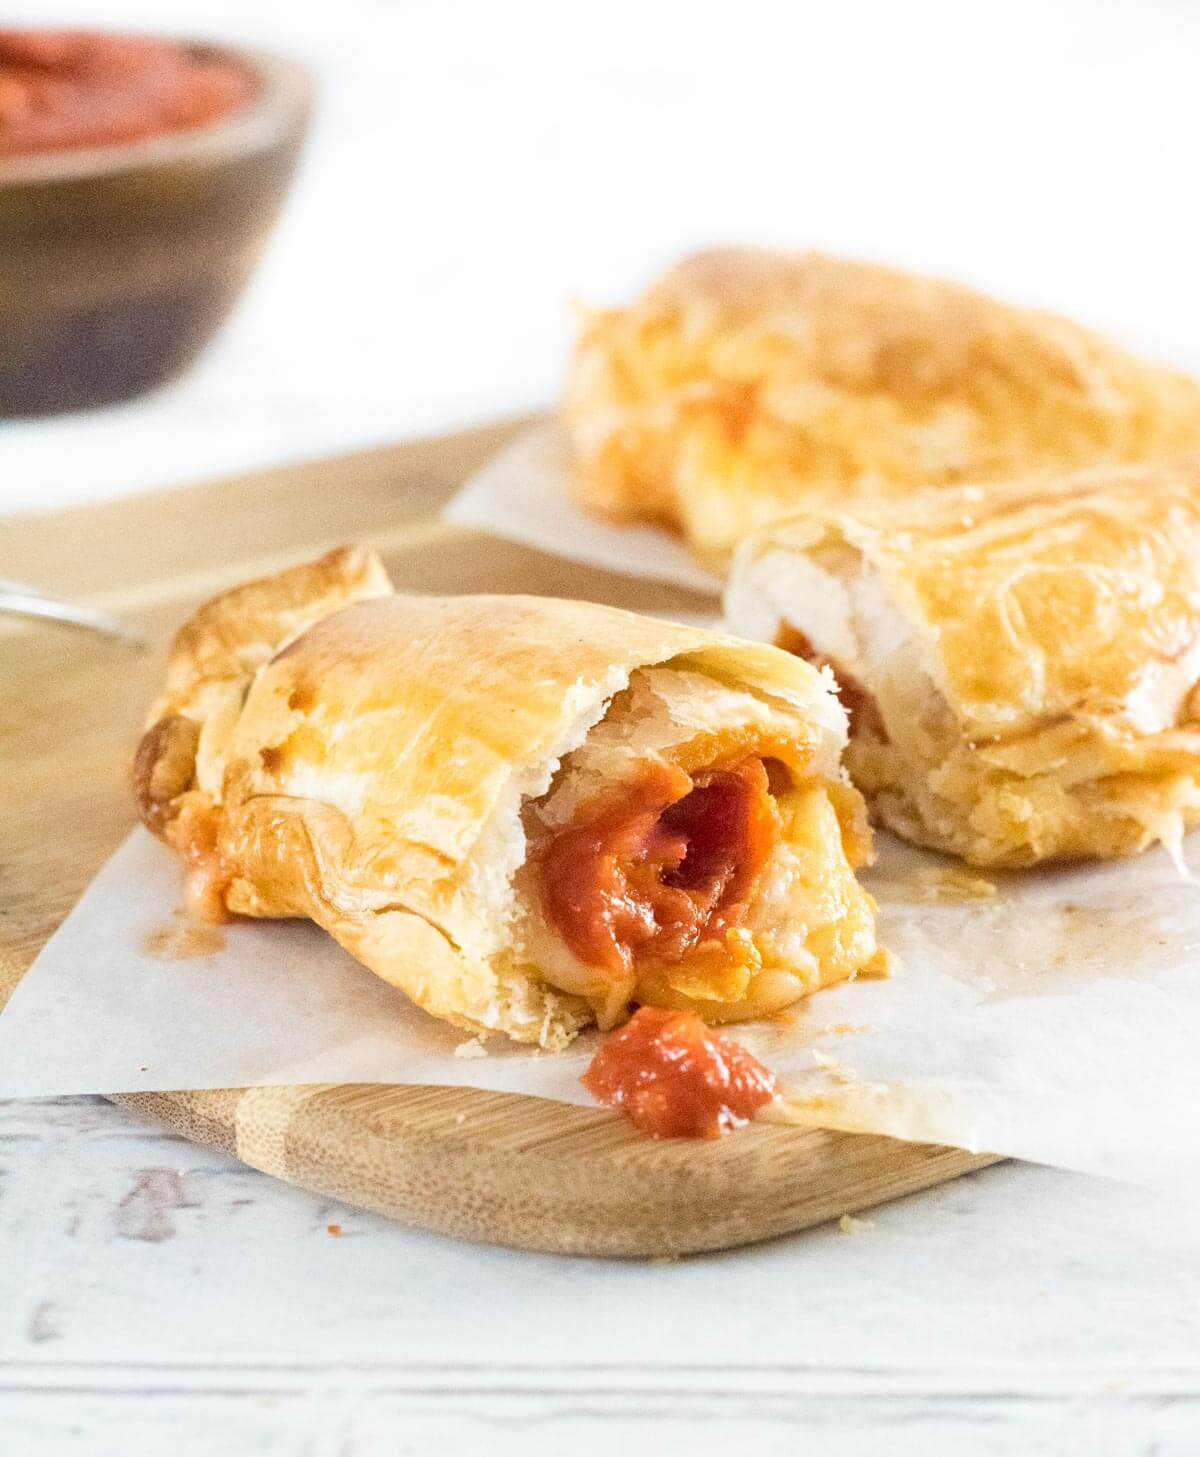 Pepperoni Pizza Hot Pocket cut open with sauce dripping out.